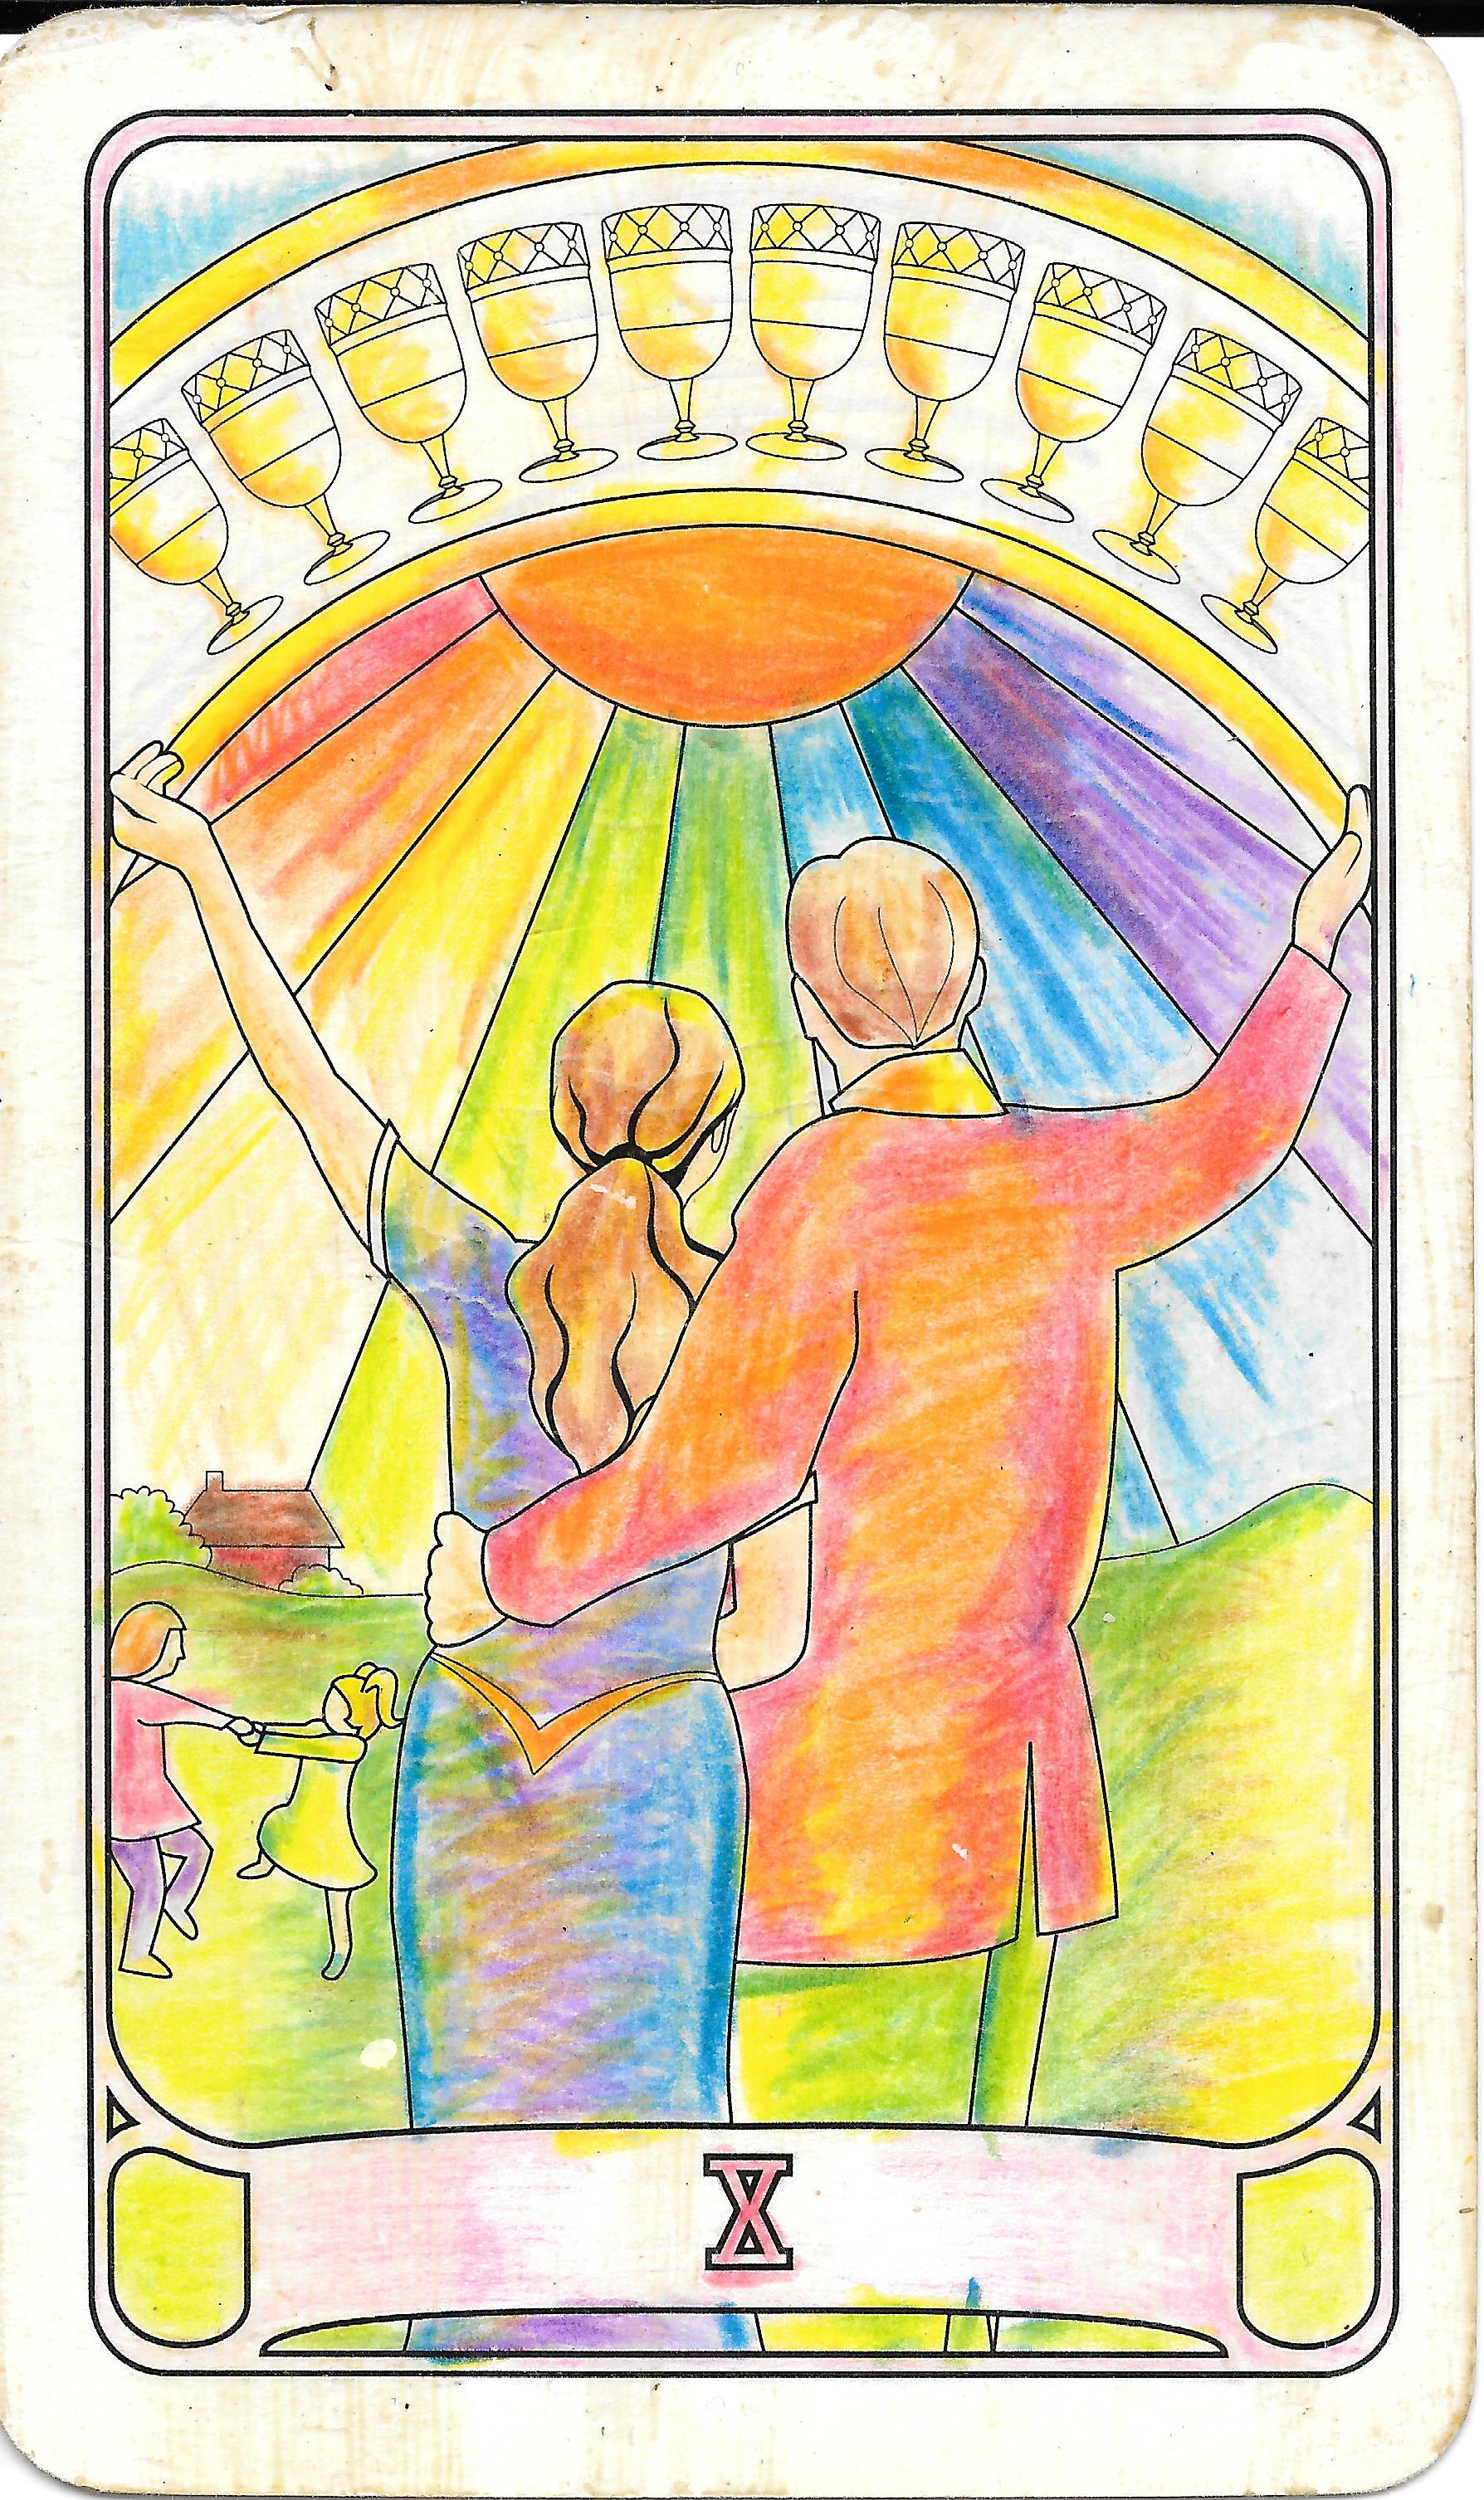 Tarot Weekly Forecast For The Week Of February 22, 2015